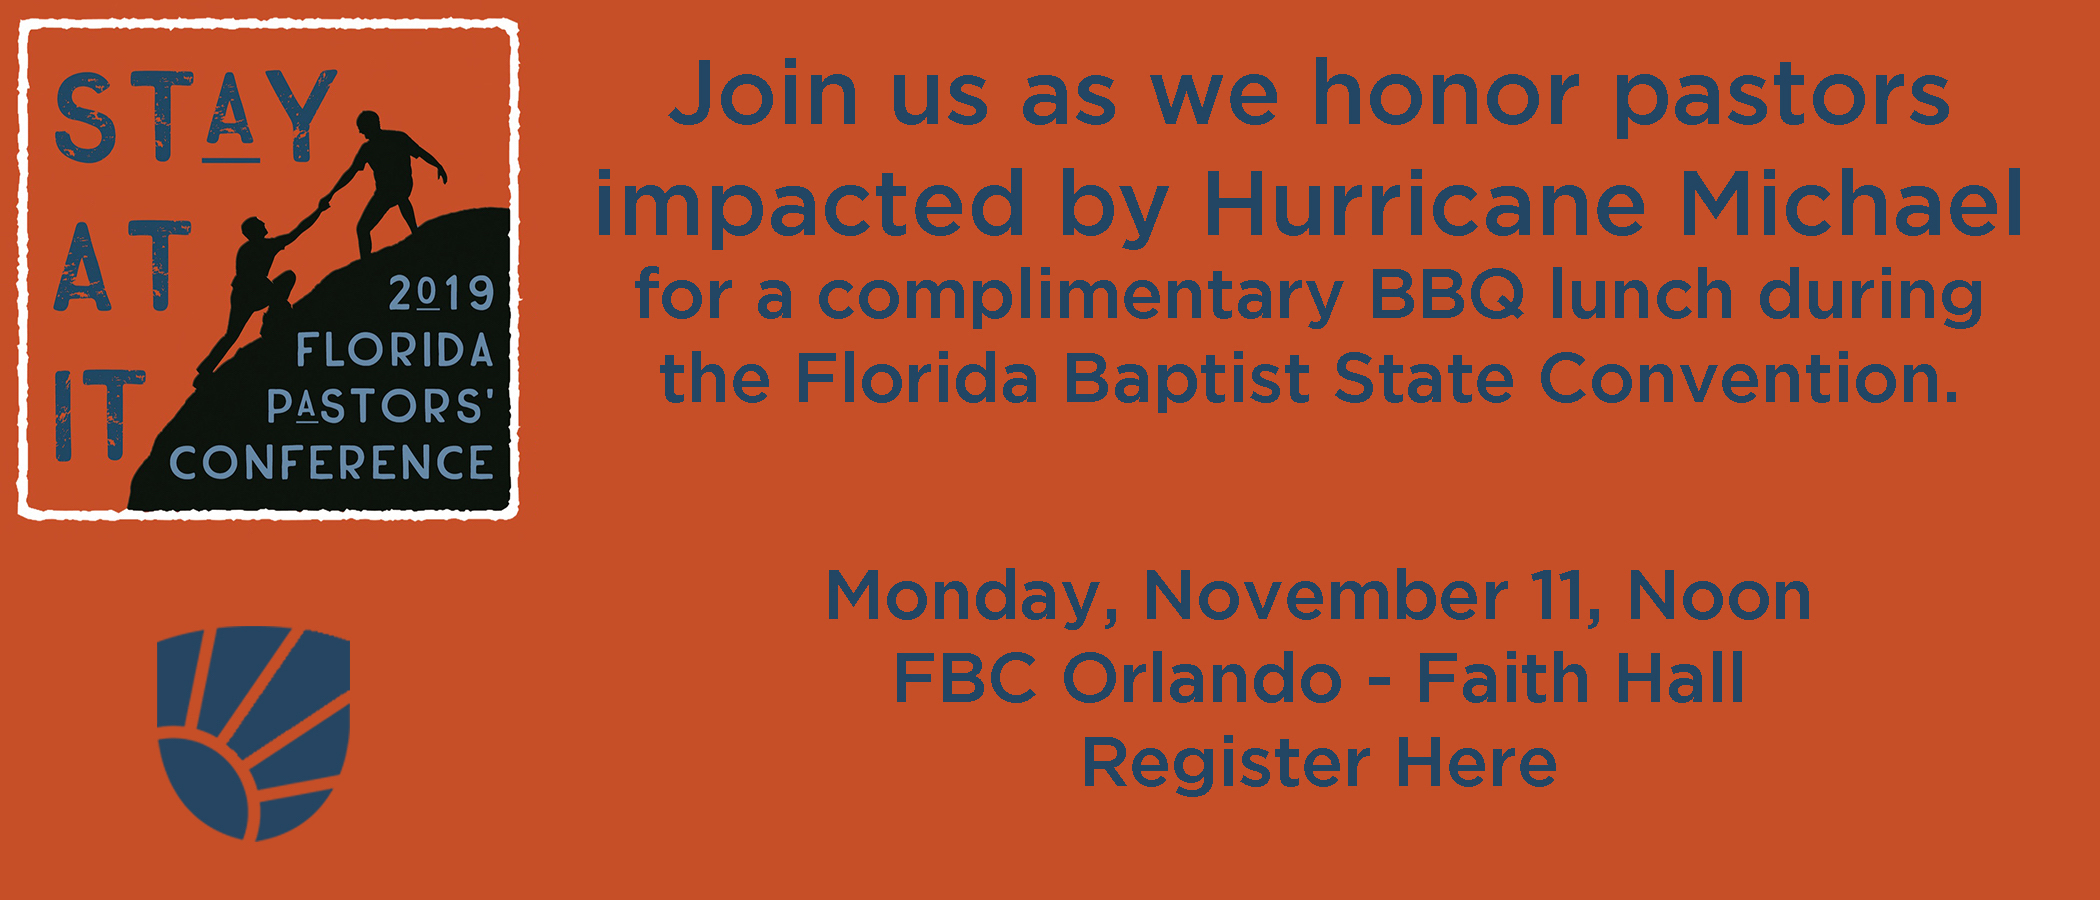 Florida Baptist Convention, Florida Baptist State Convention, Meal Ticket, Hurricane Michael